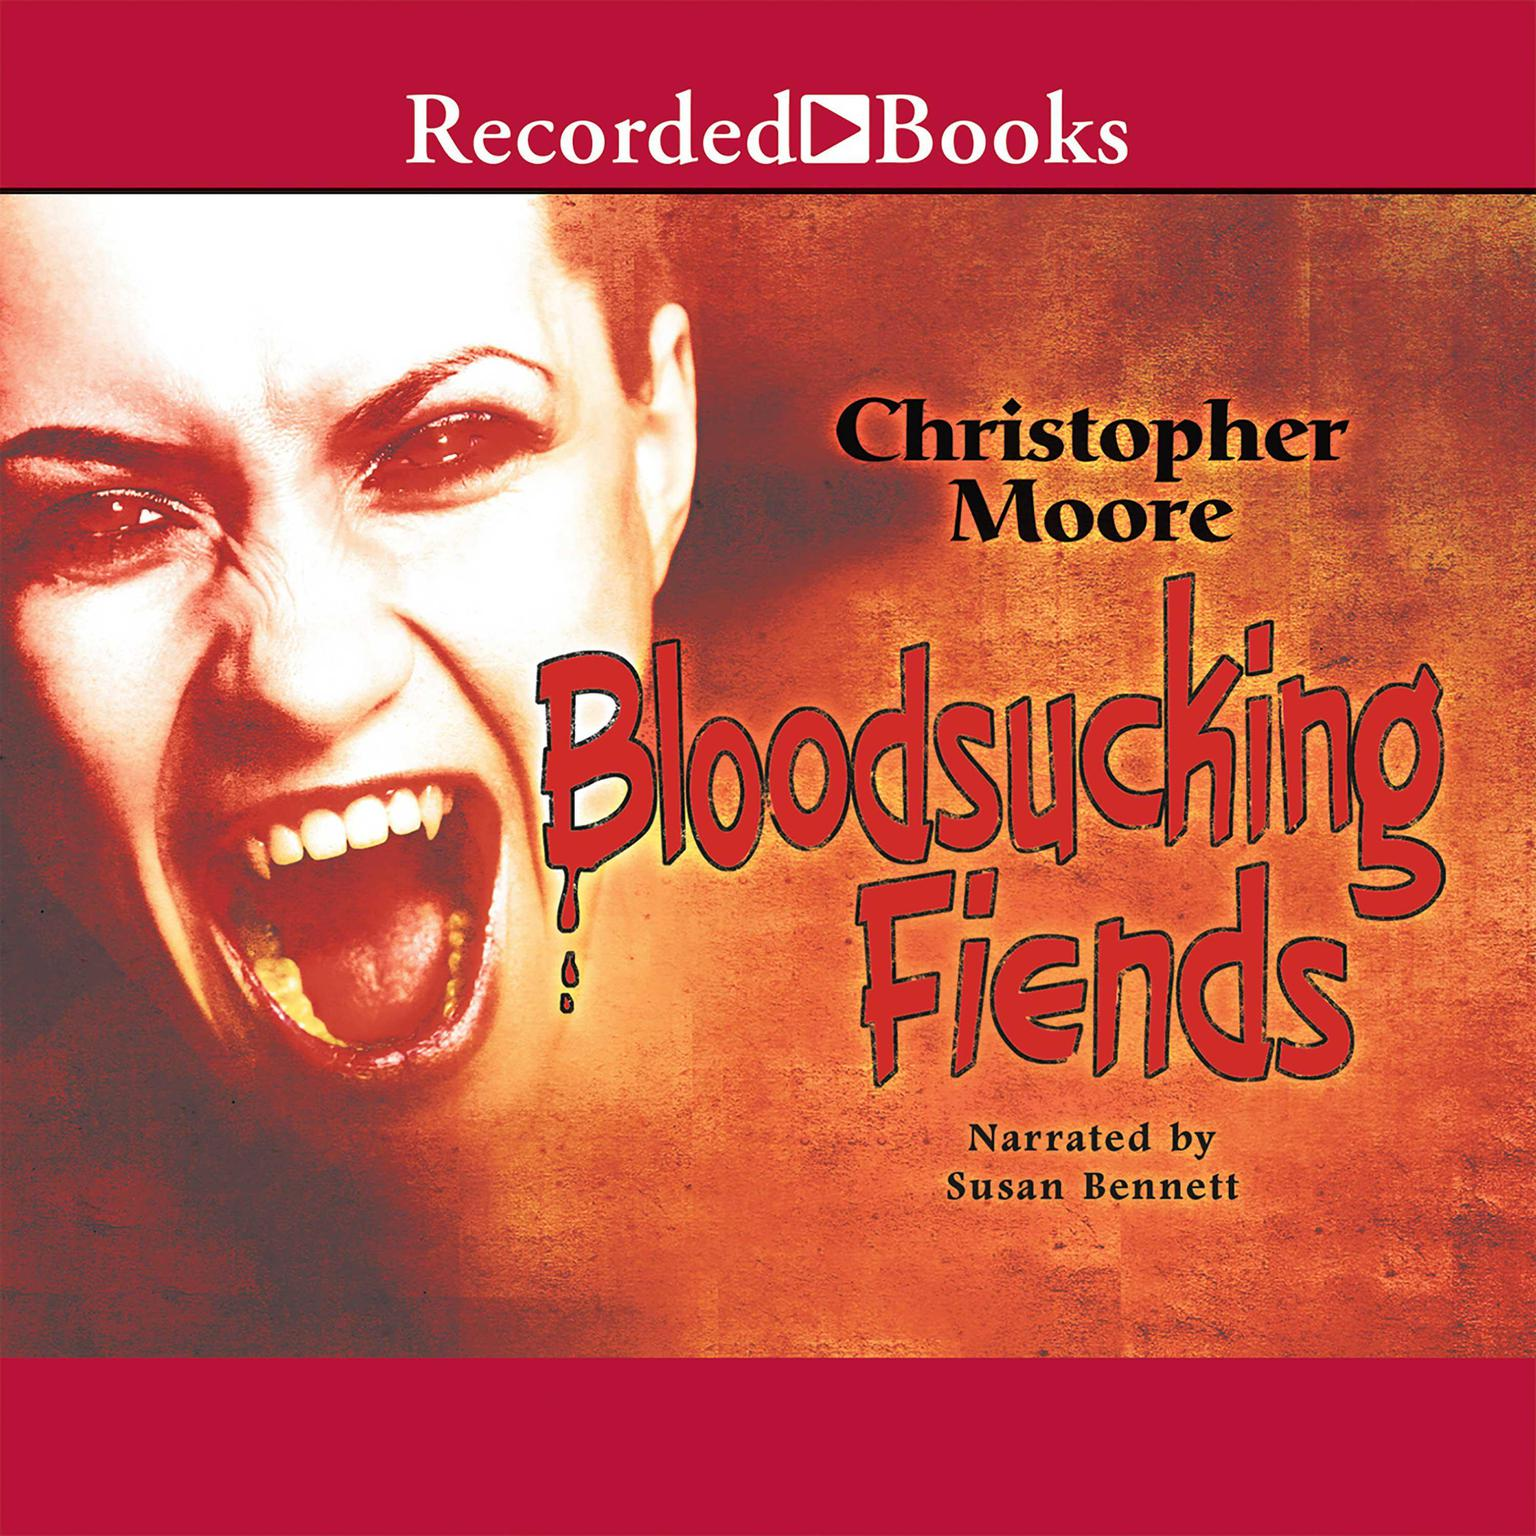 Printable Bloodsucking Fiends Audiobook Cover Art